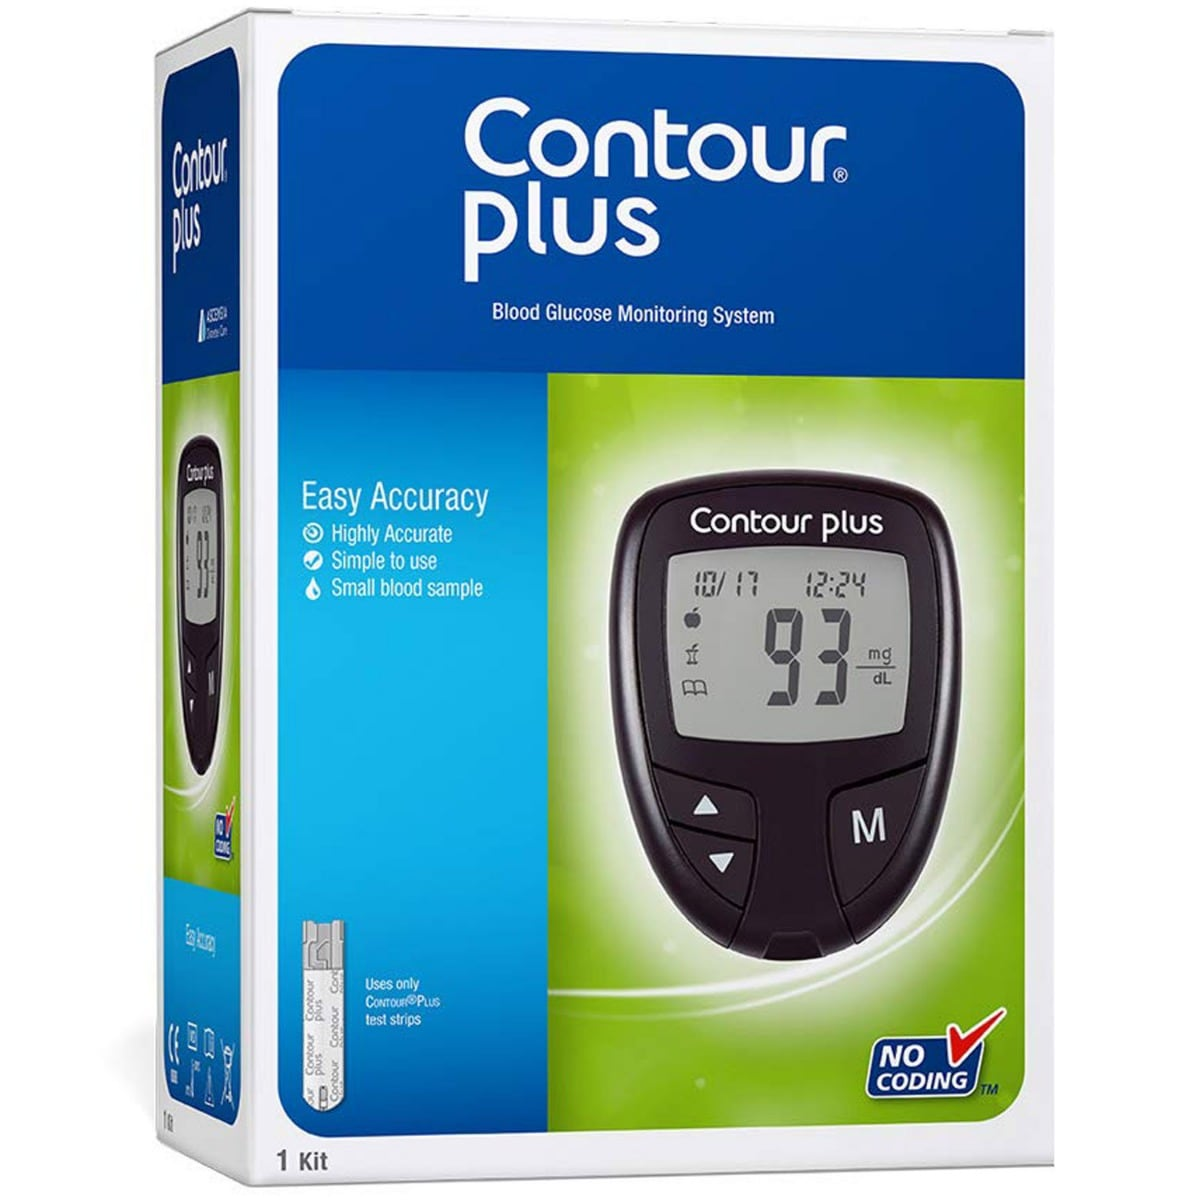 Contour Plus Blood Glucose Monitoring System With 50 Test Strips, Pack of 1